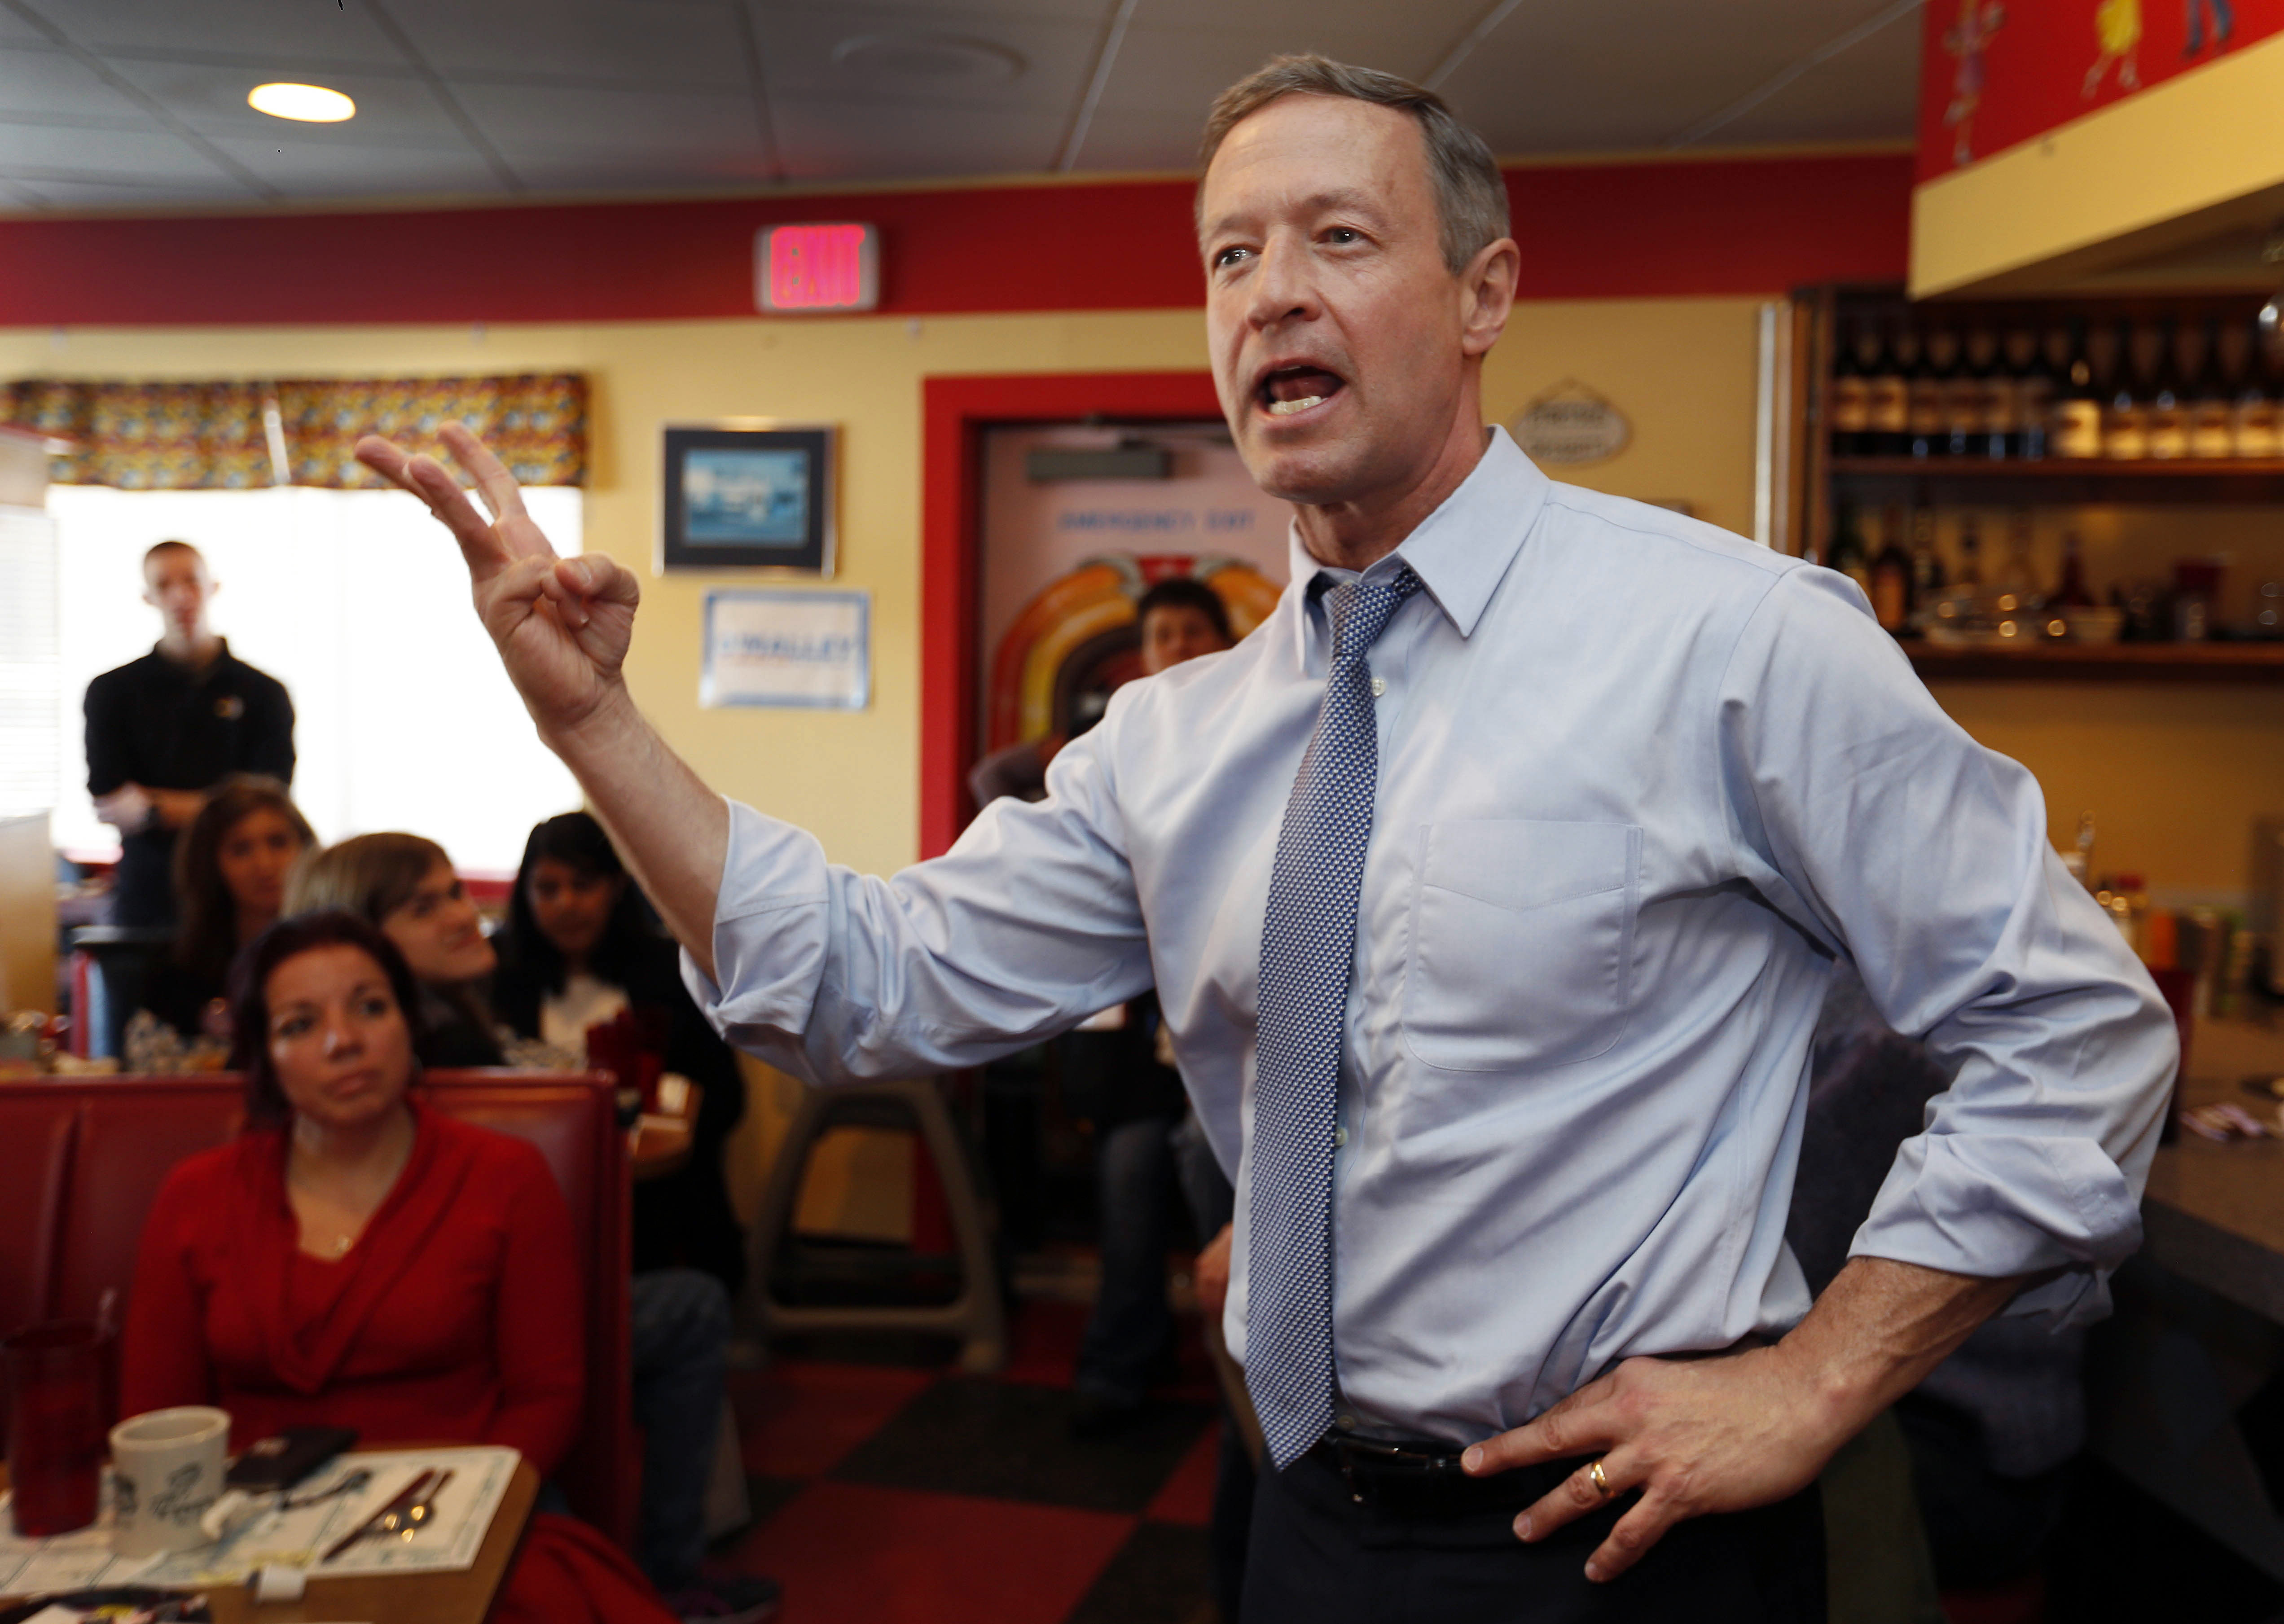 O'Malley: Voters want to hear more about issues than Trump